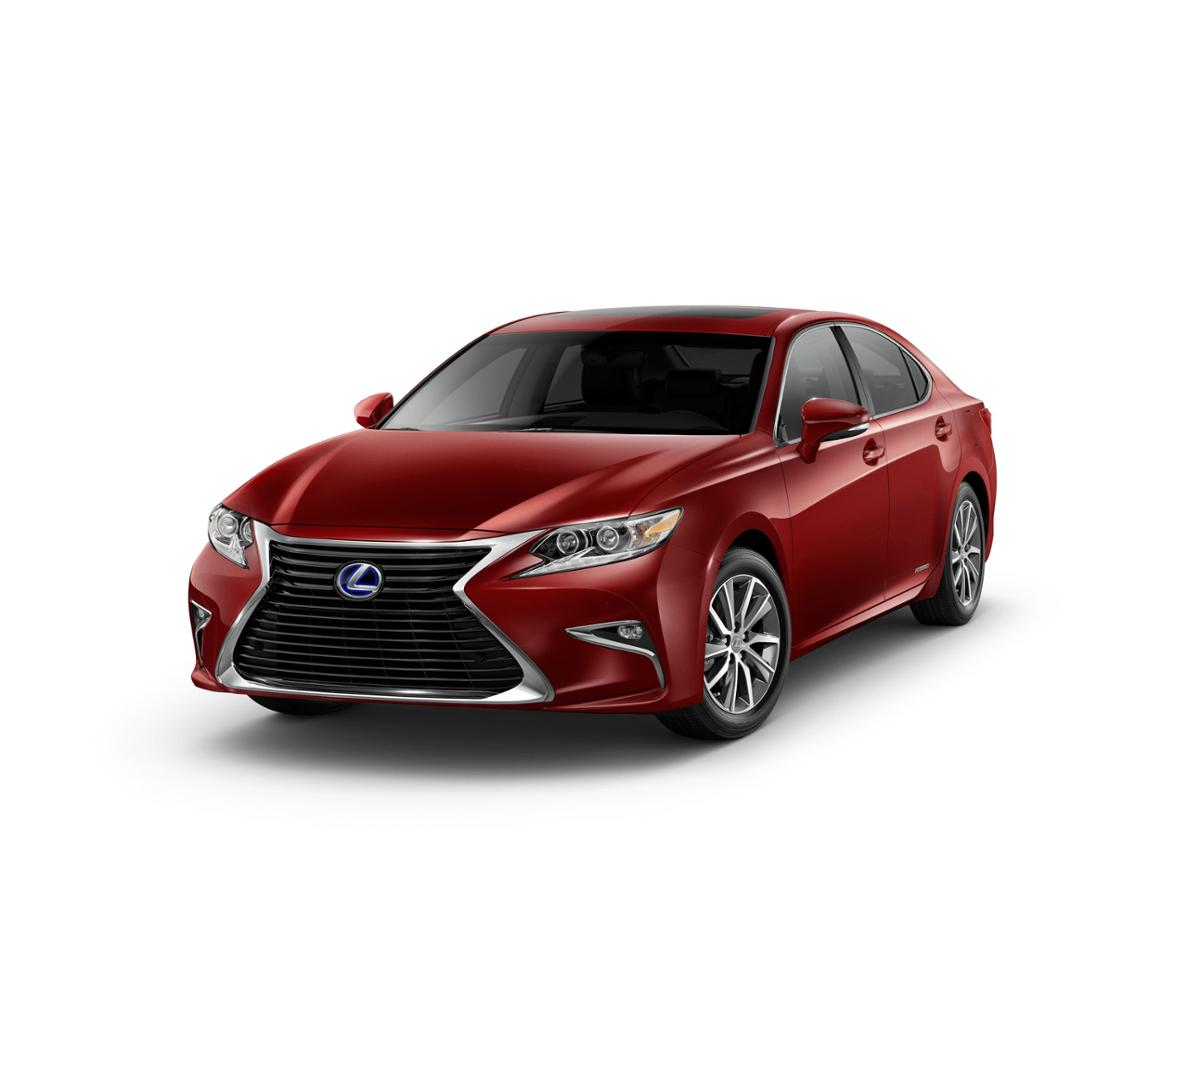 2018 lexus es 300h for sale in san jose jthbw1gg2j2186614 lexus stevens creek. Black Bedroom Furniture Sets. Home Design Ideas